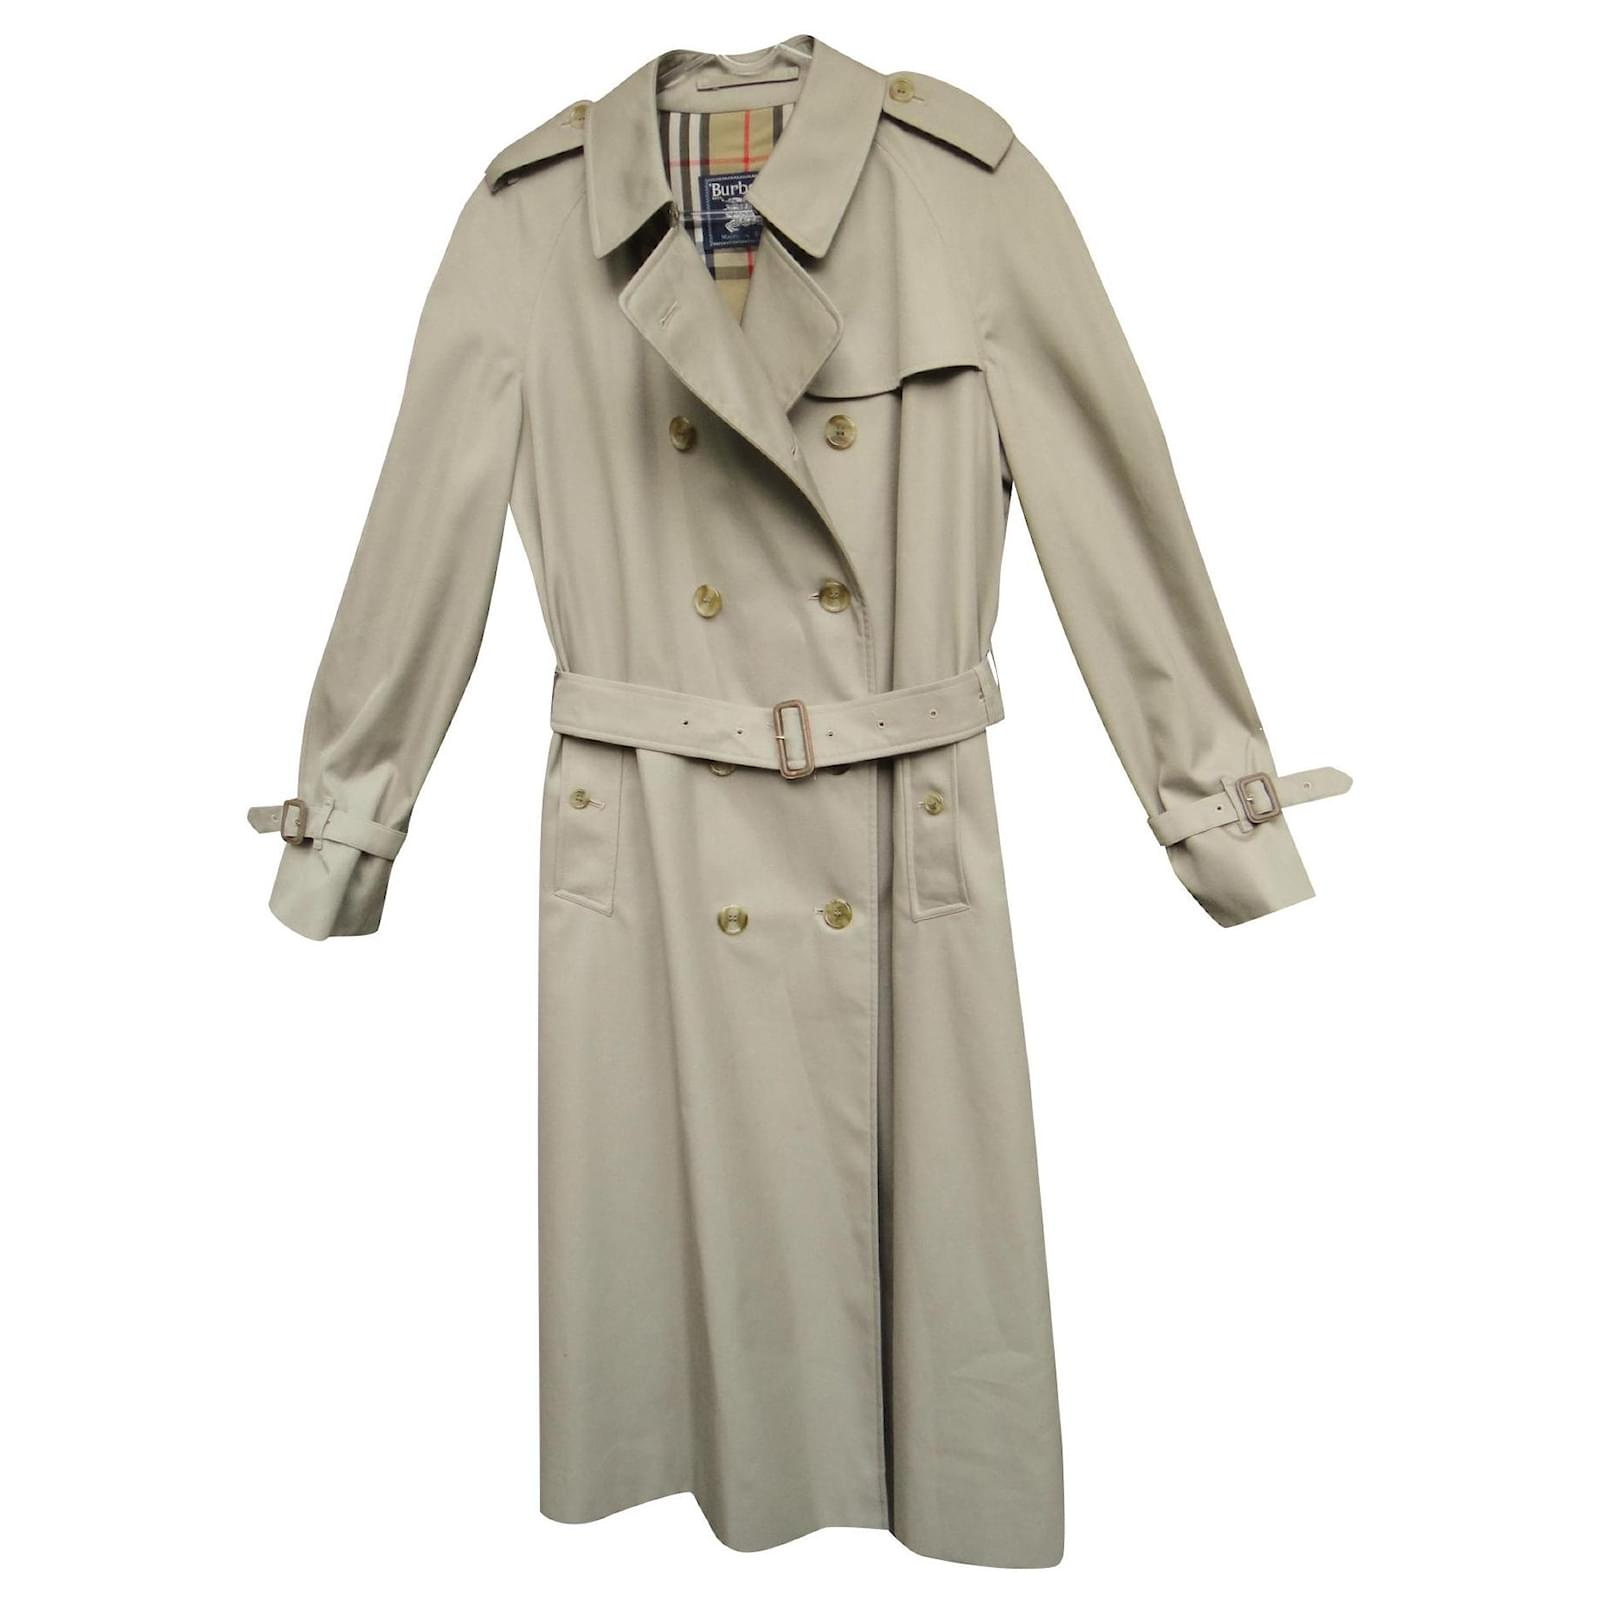 Burberry vintage Burberry women's trench coat 44 Perfect condition Trench  coats Cotton,Polyester Beige ref.159092 - Joli Closet